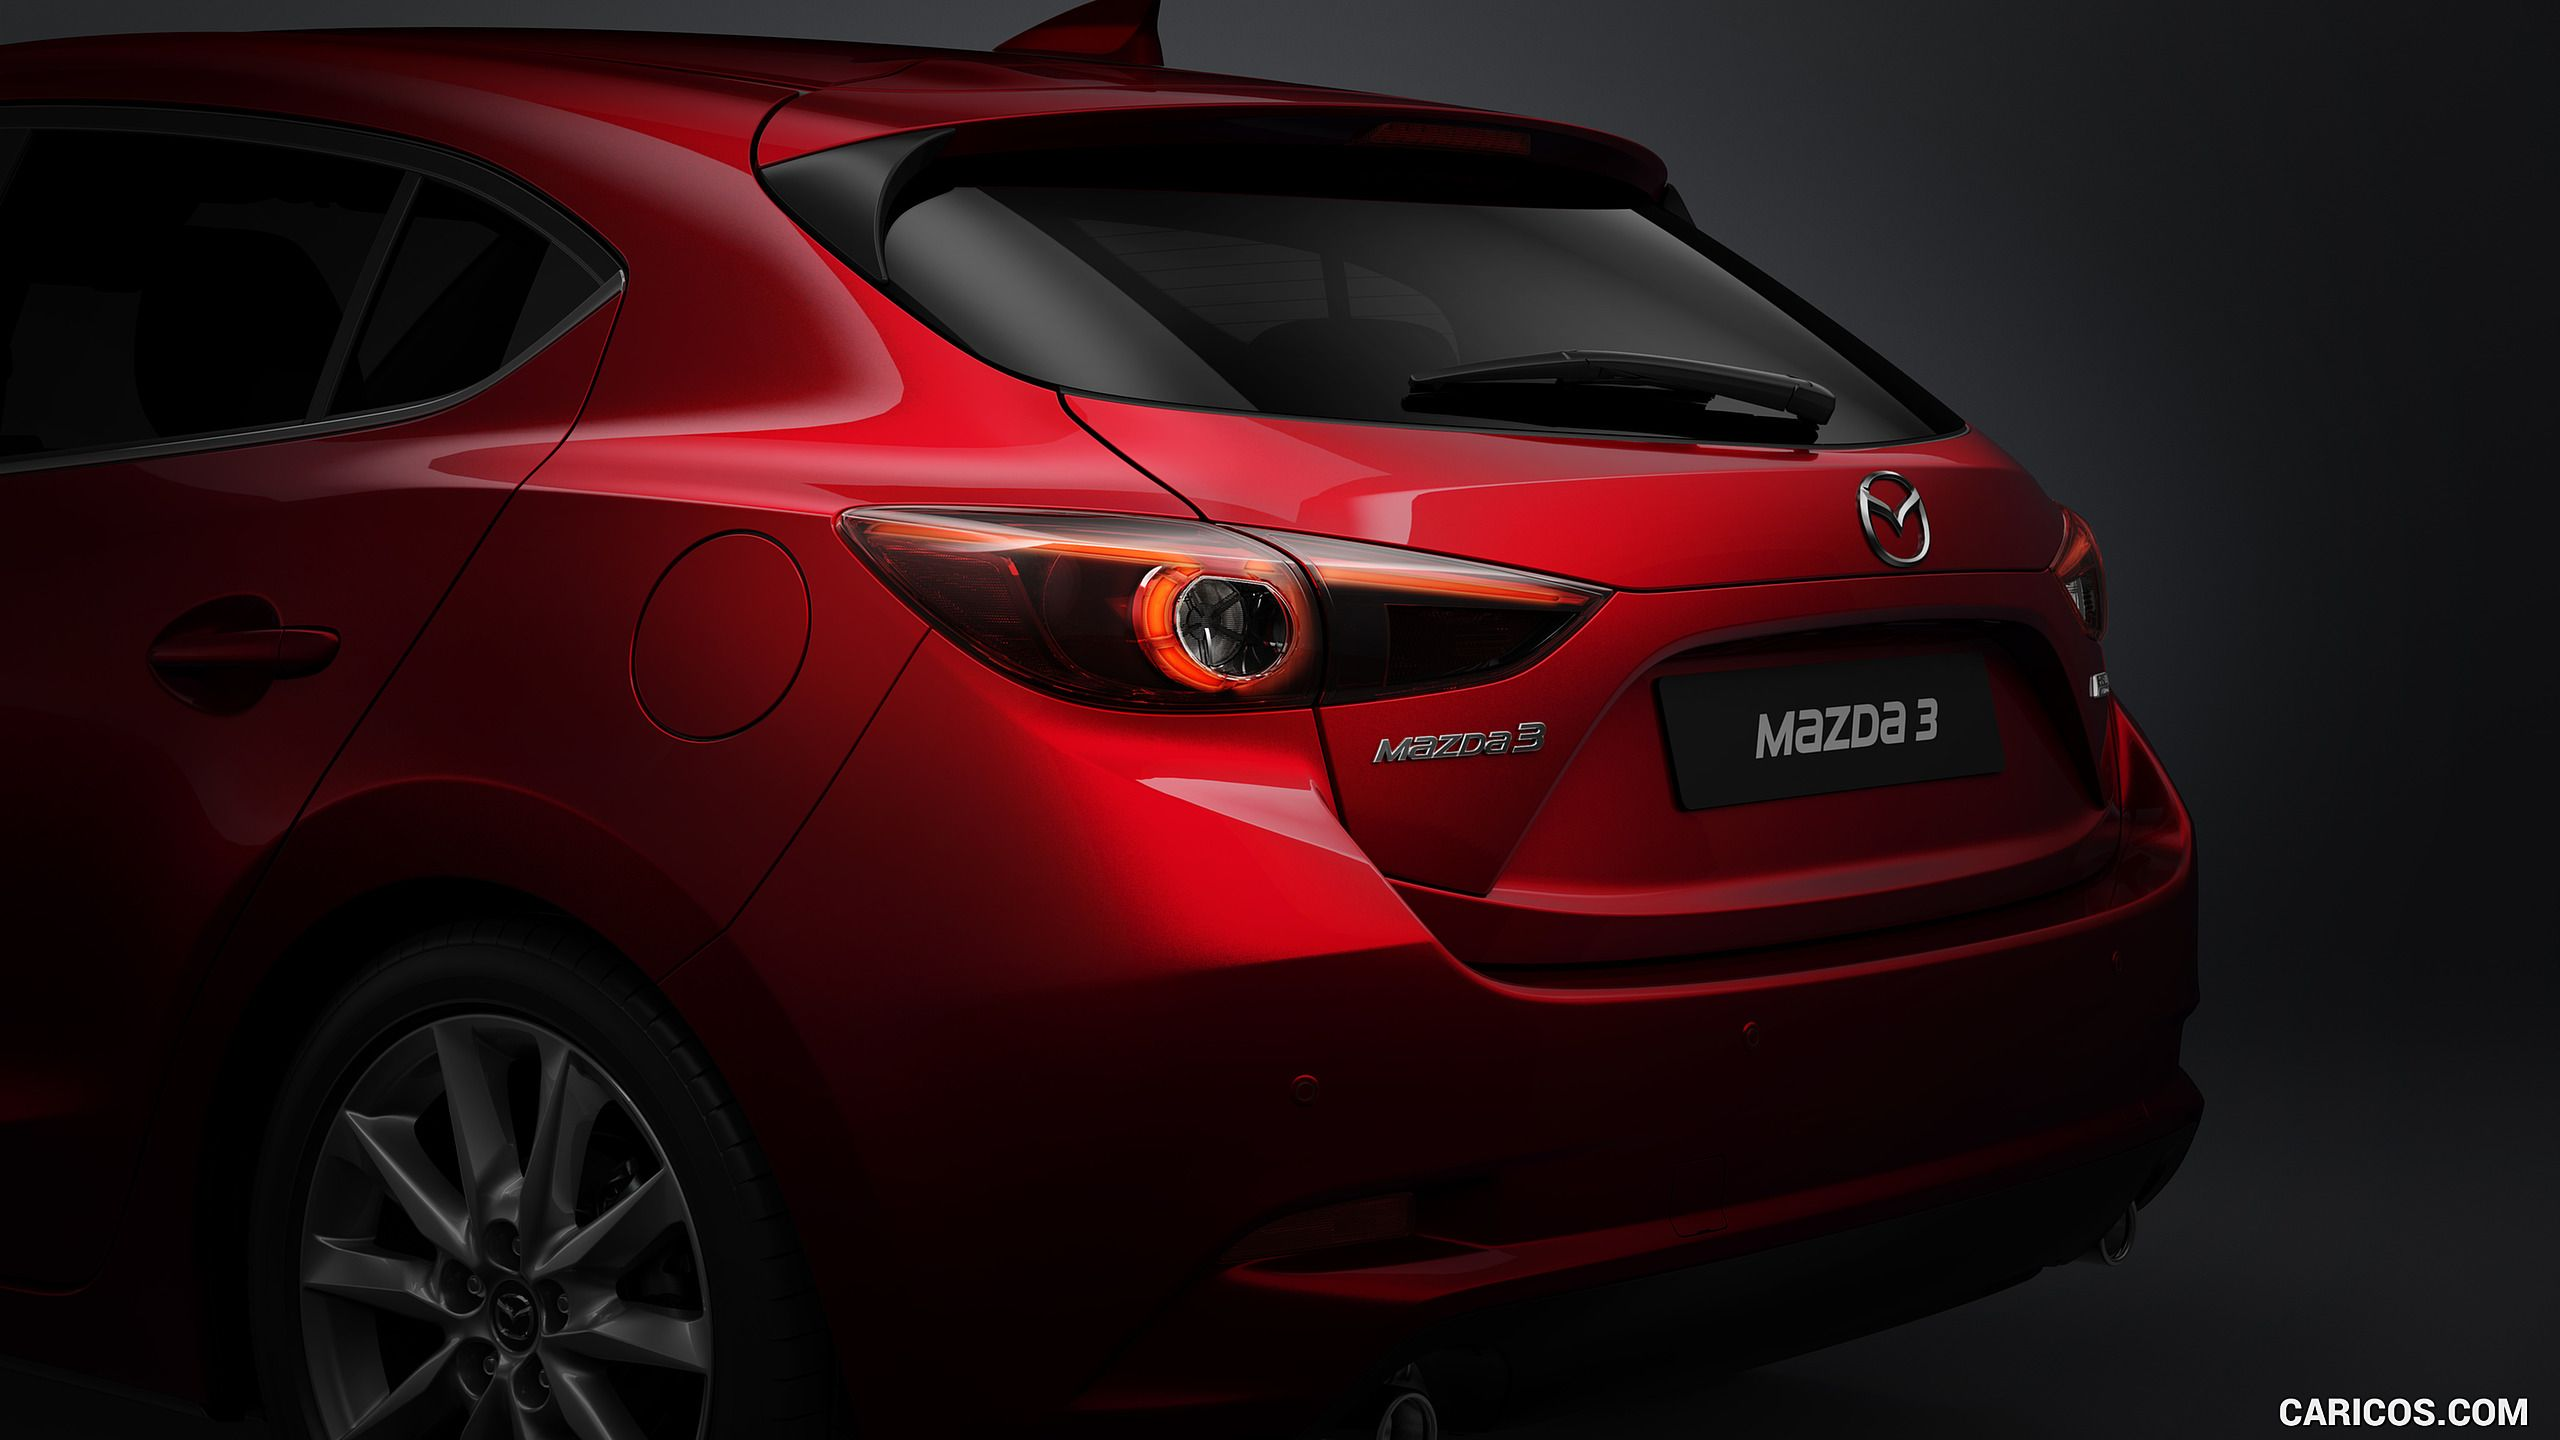 2017 mazda 3 5 door hatchback tail light hd